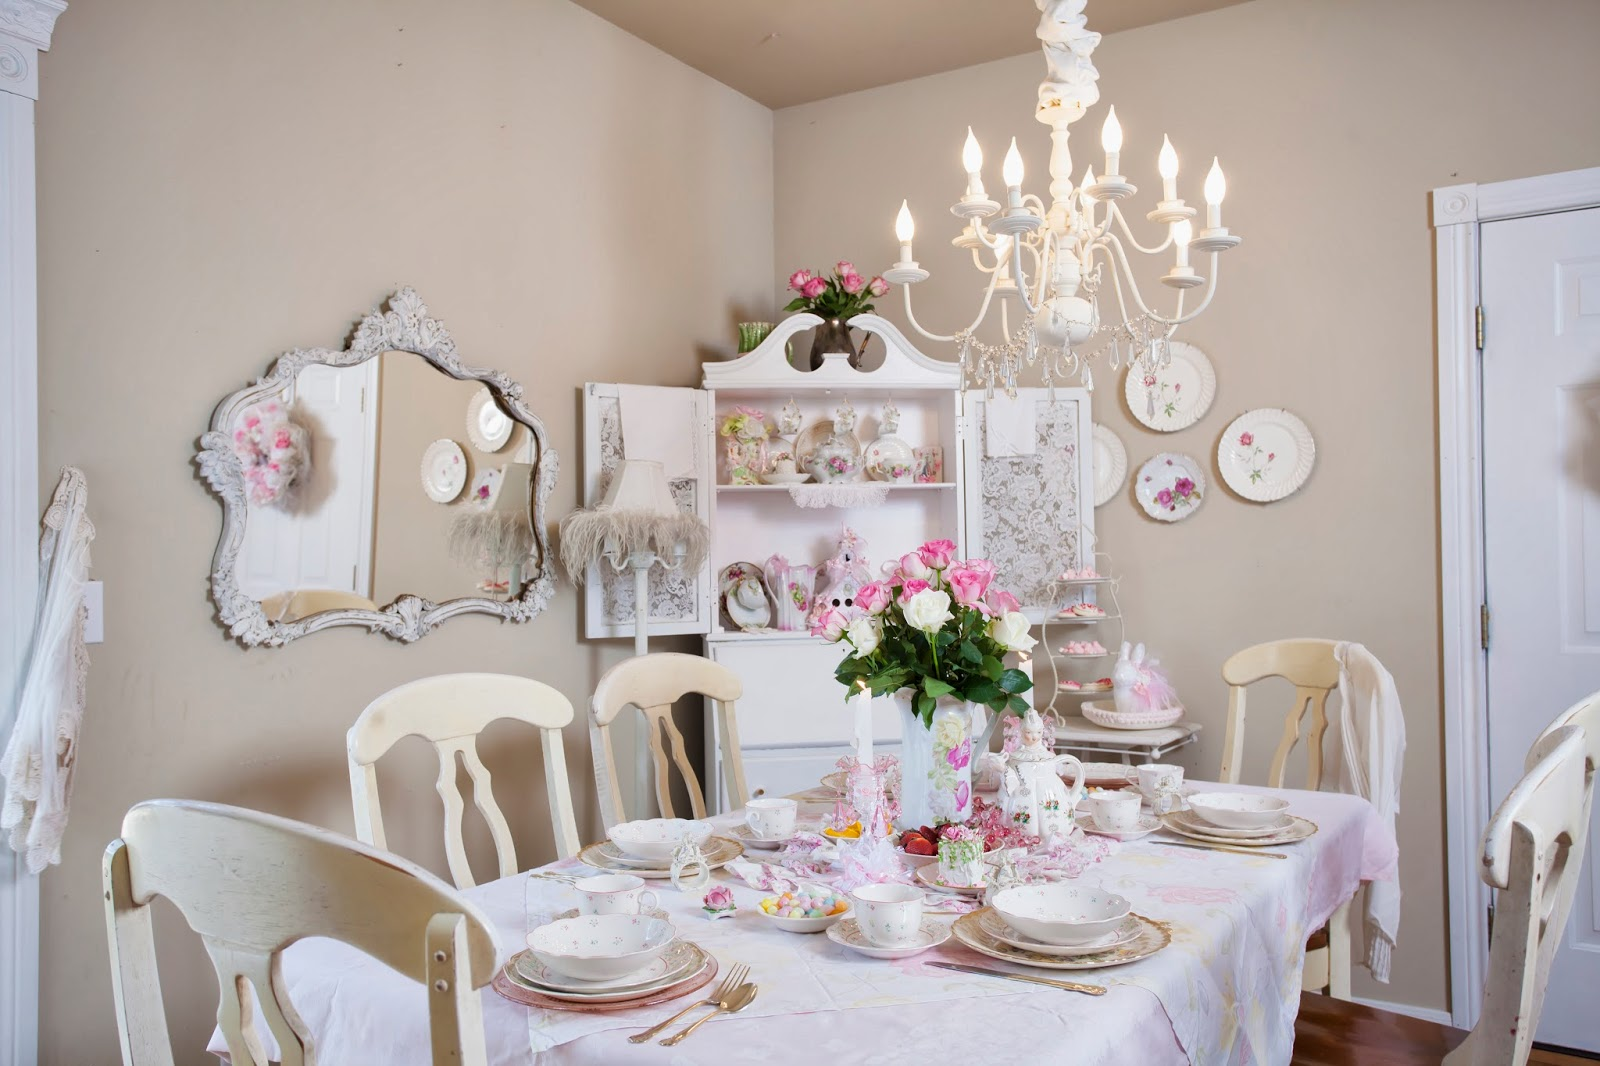 olivia 39 s romantic home shabby chic dining room. Black Bedroom Furniture Sets. Home Design Ideas